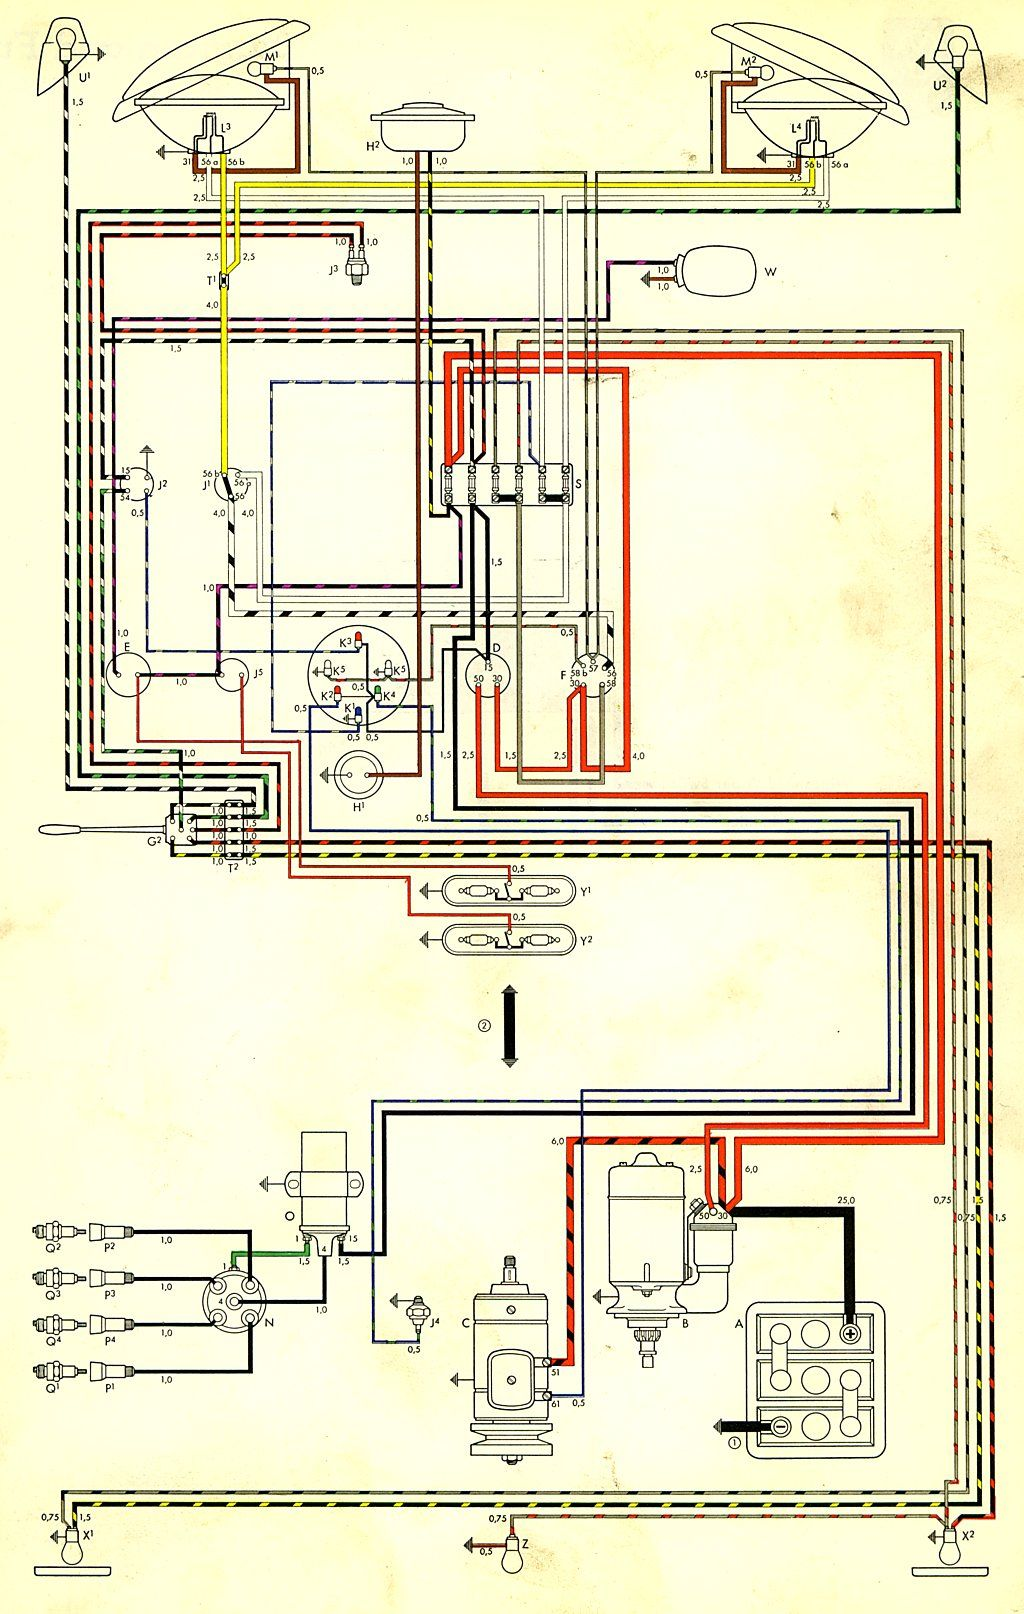 19 Complex How To Read Wiring Diagrams Technique House Wiring